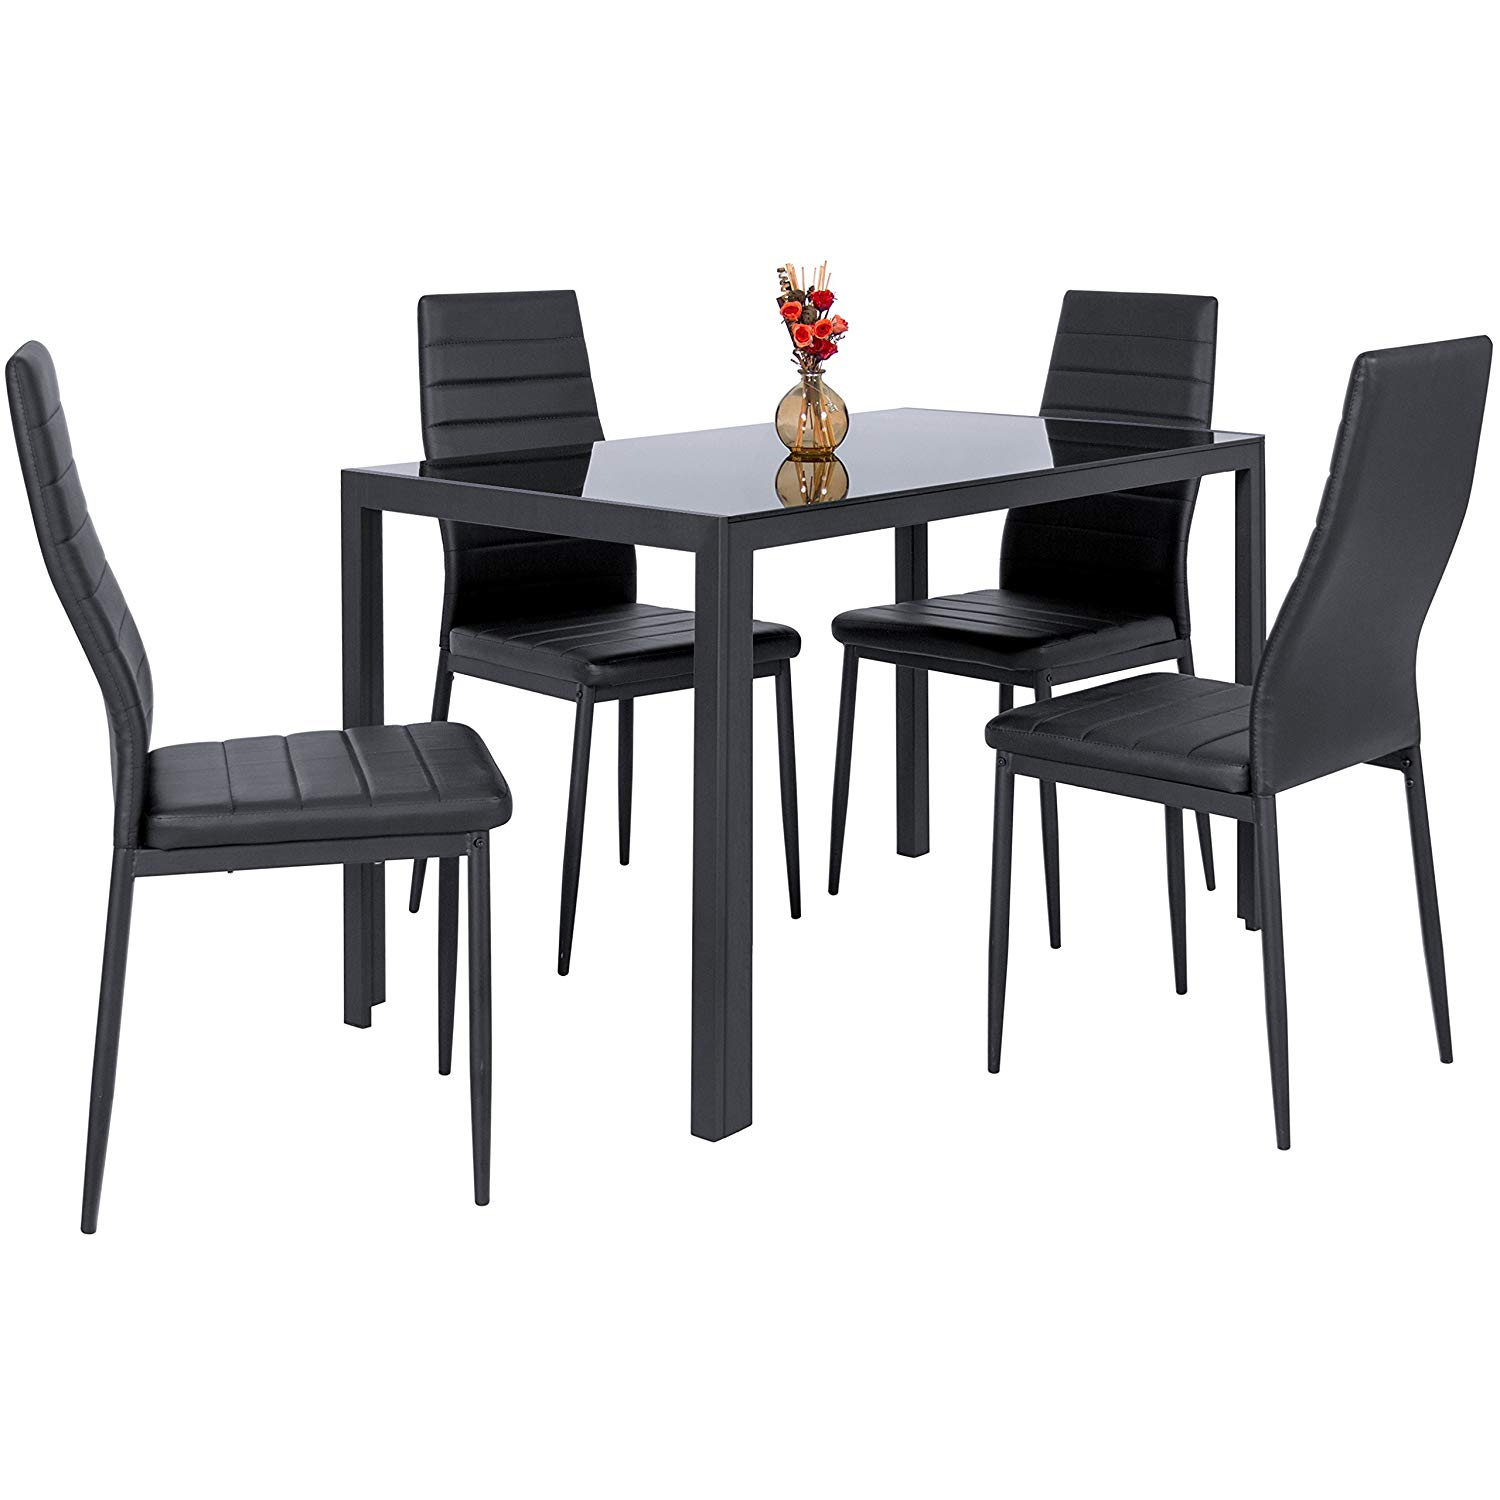 Free Sample Dining Room Furniture Strong Metal Modern New Design High Gloss Table Set With 4 Chairs Moderm